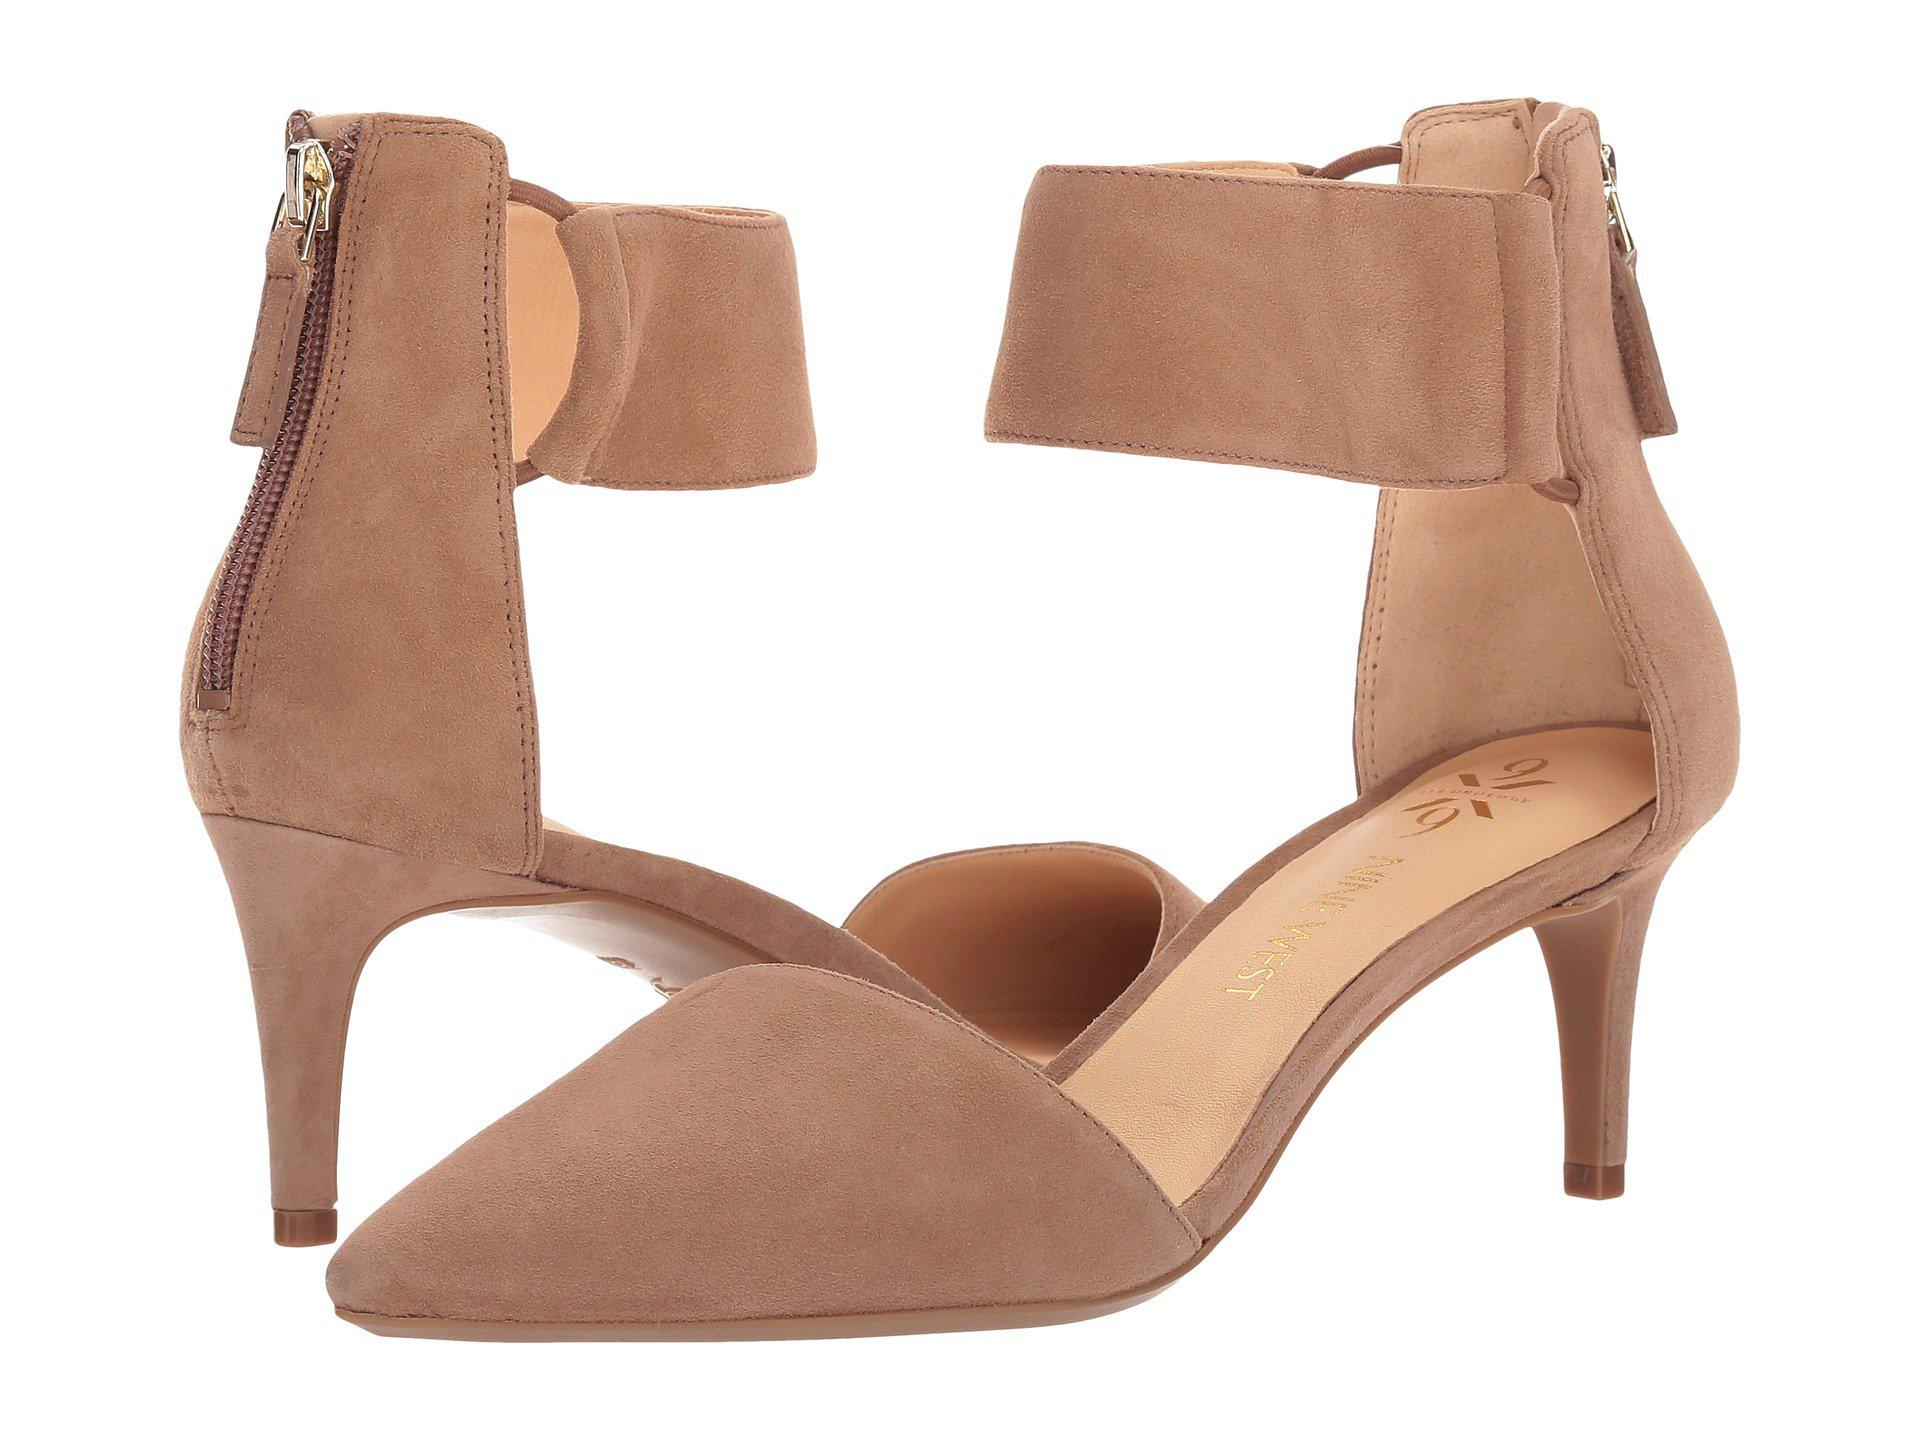 Nine West Spring9x9 qOHhxUX